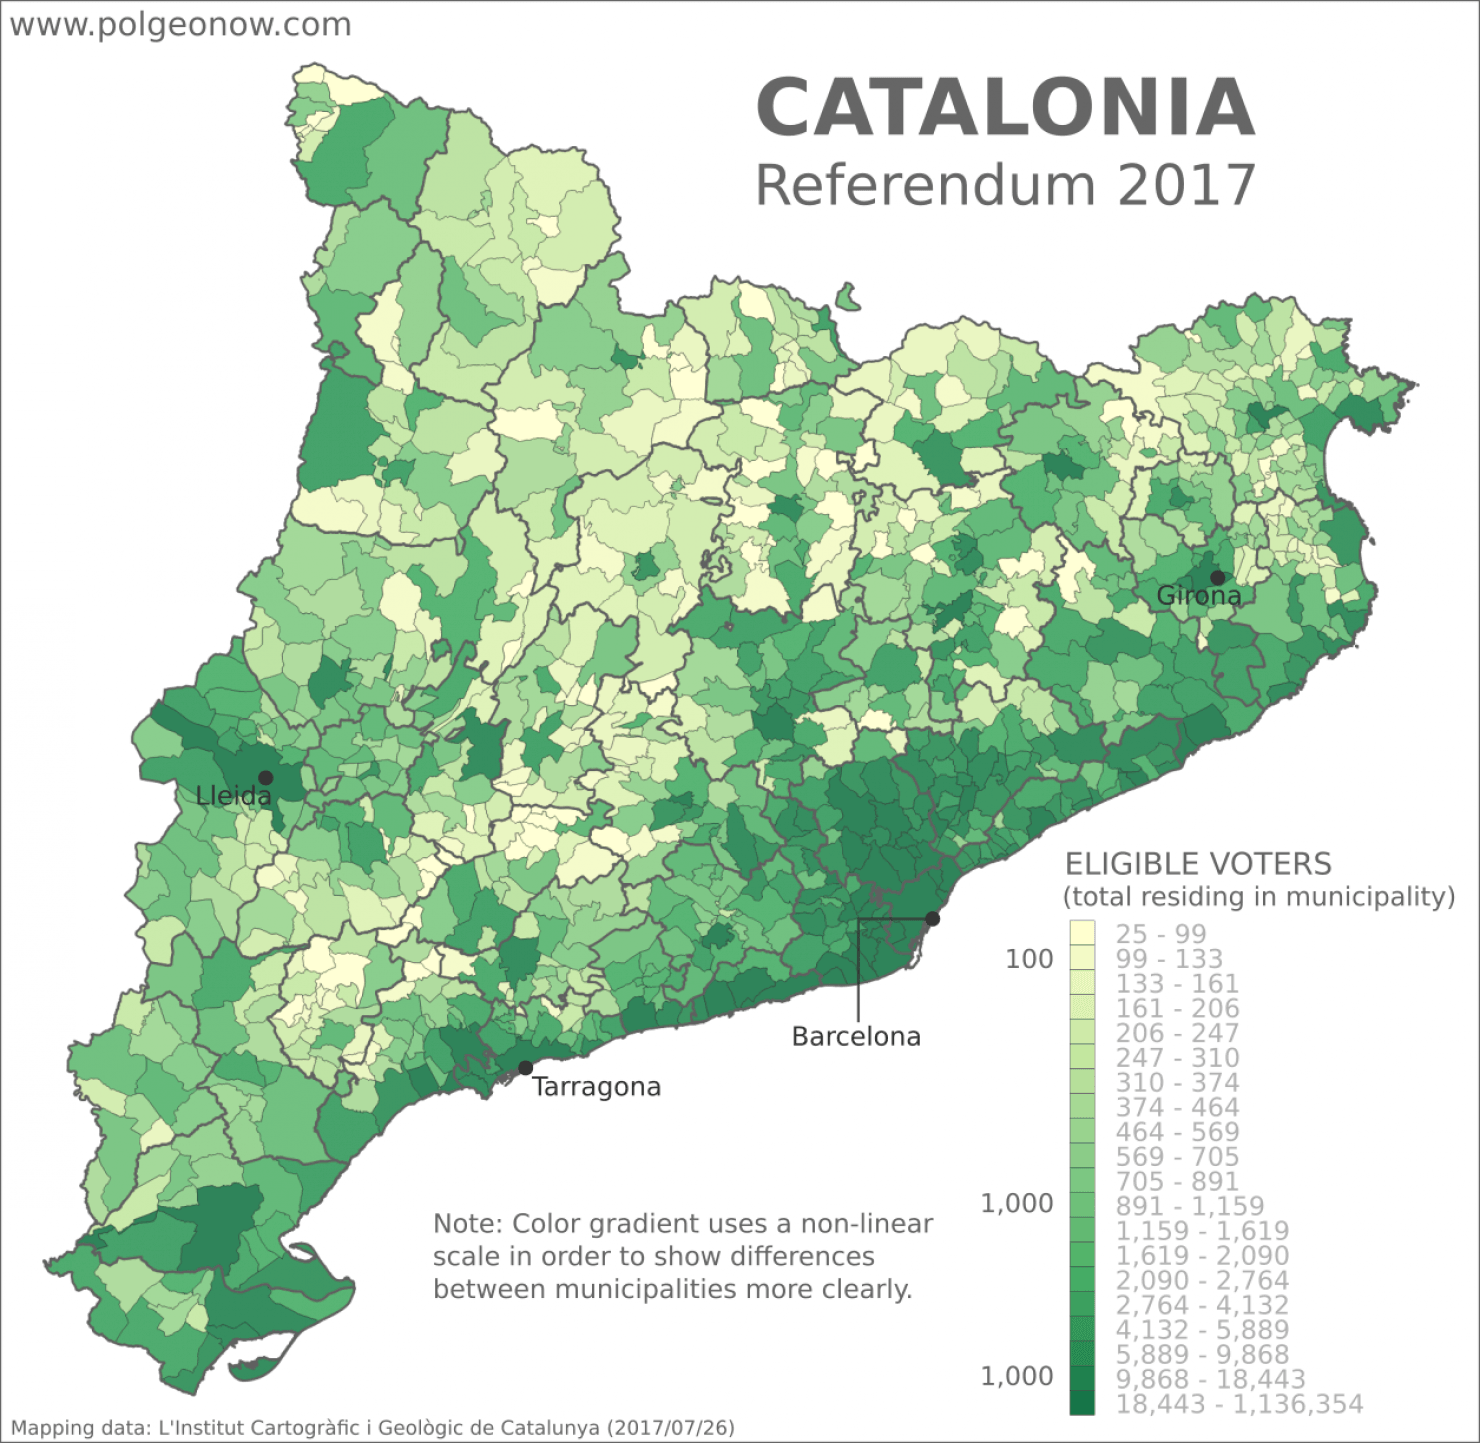 Catalonia Referendum Detailed Results in 5 Maps